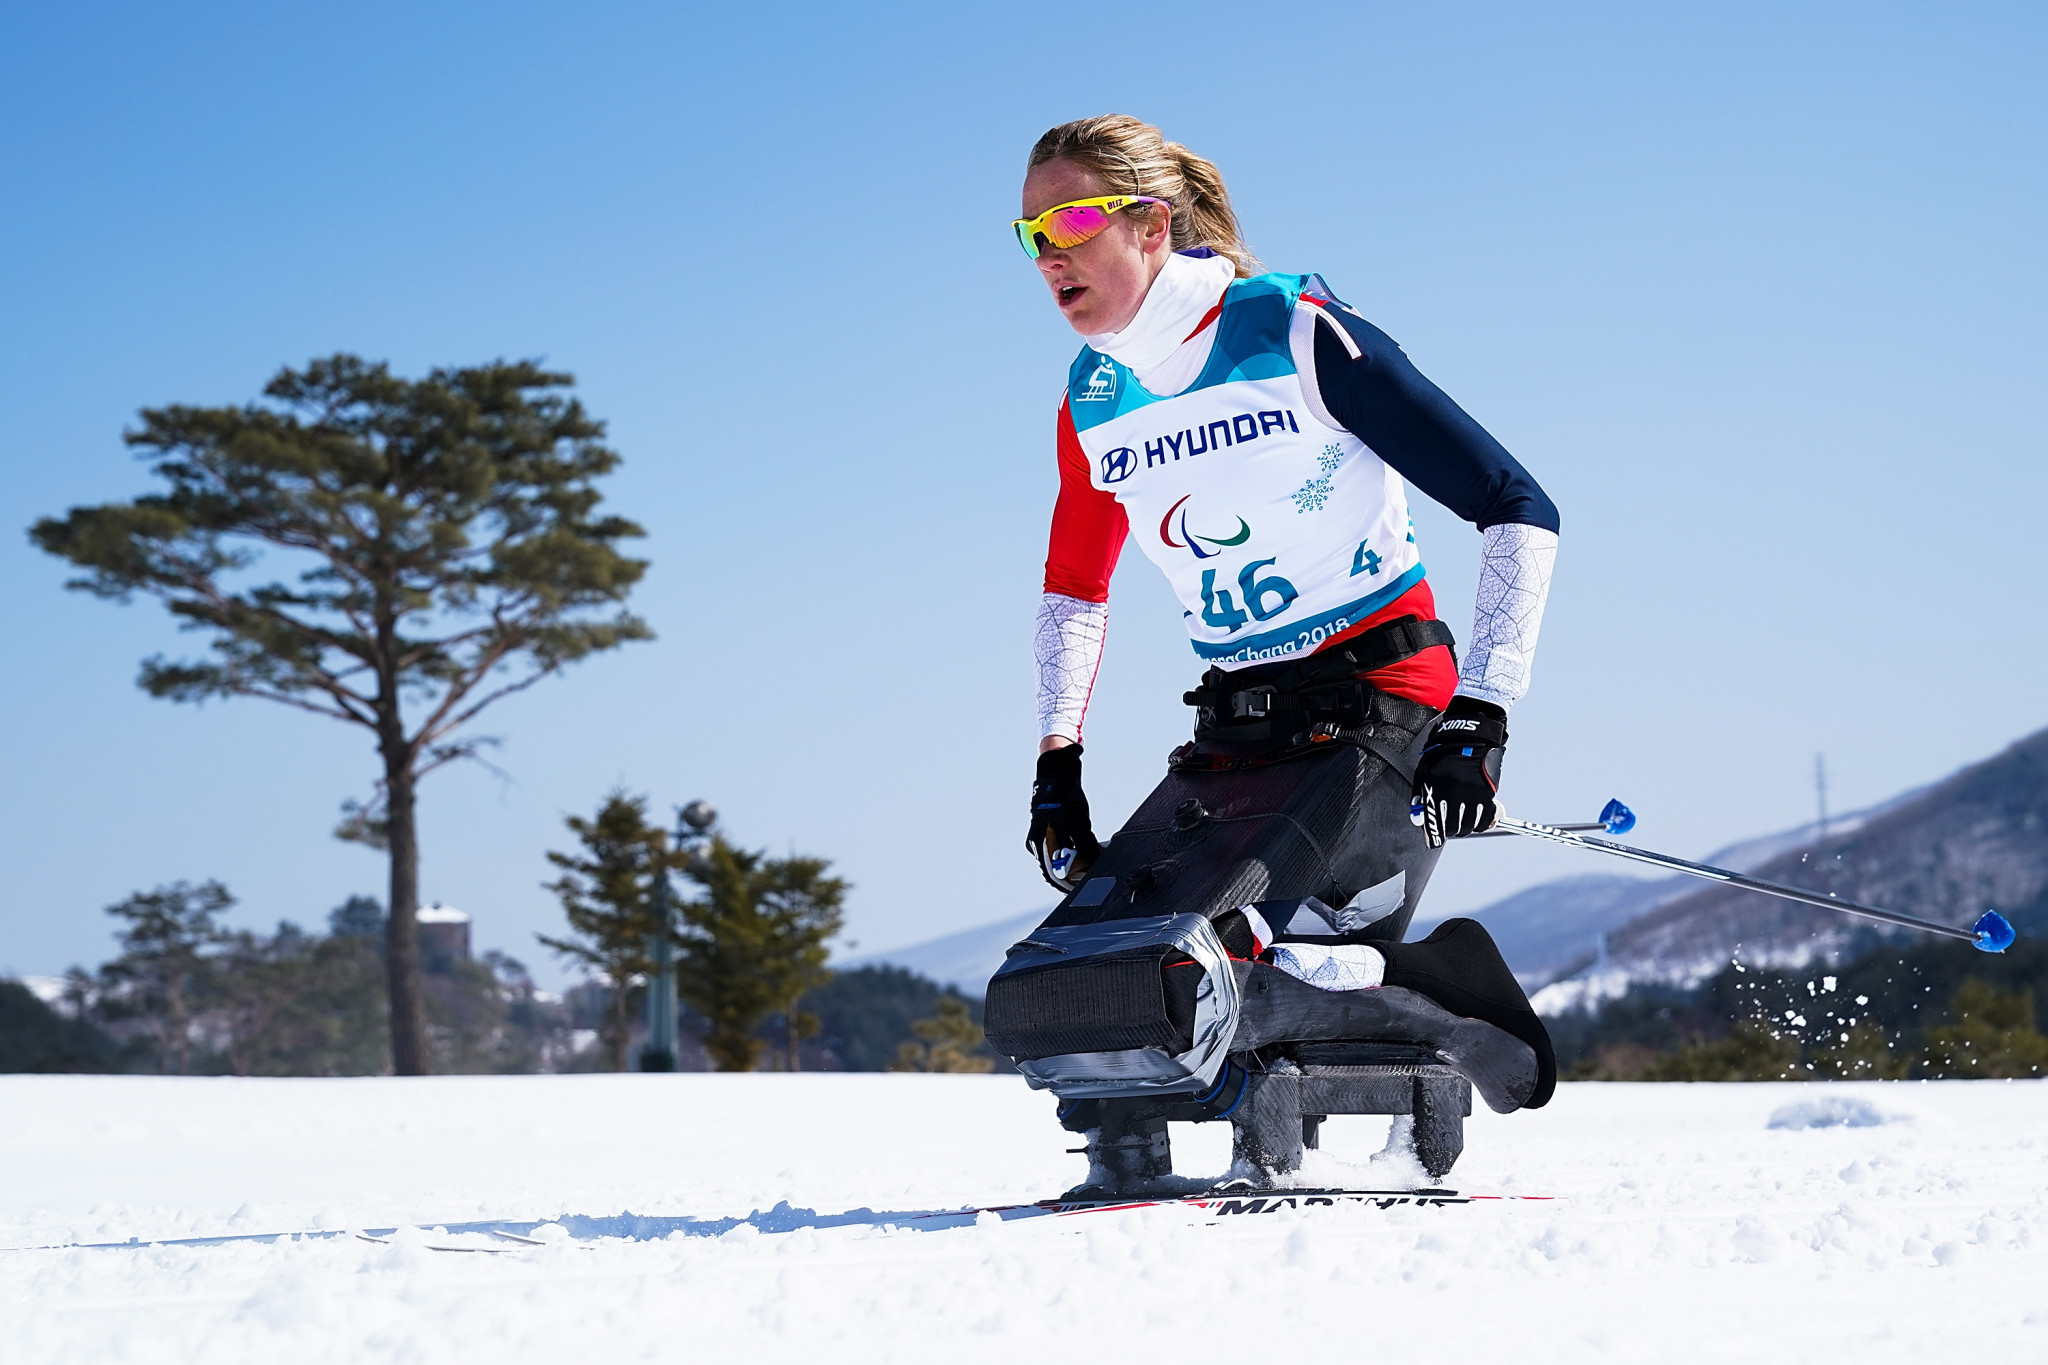 Norway's Birgit Skarstein has a window of opportunity at the World Para Nordic Skiing World Cup in Altenberg and Dresden ©Getty Images